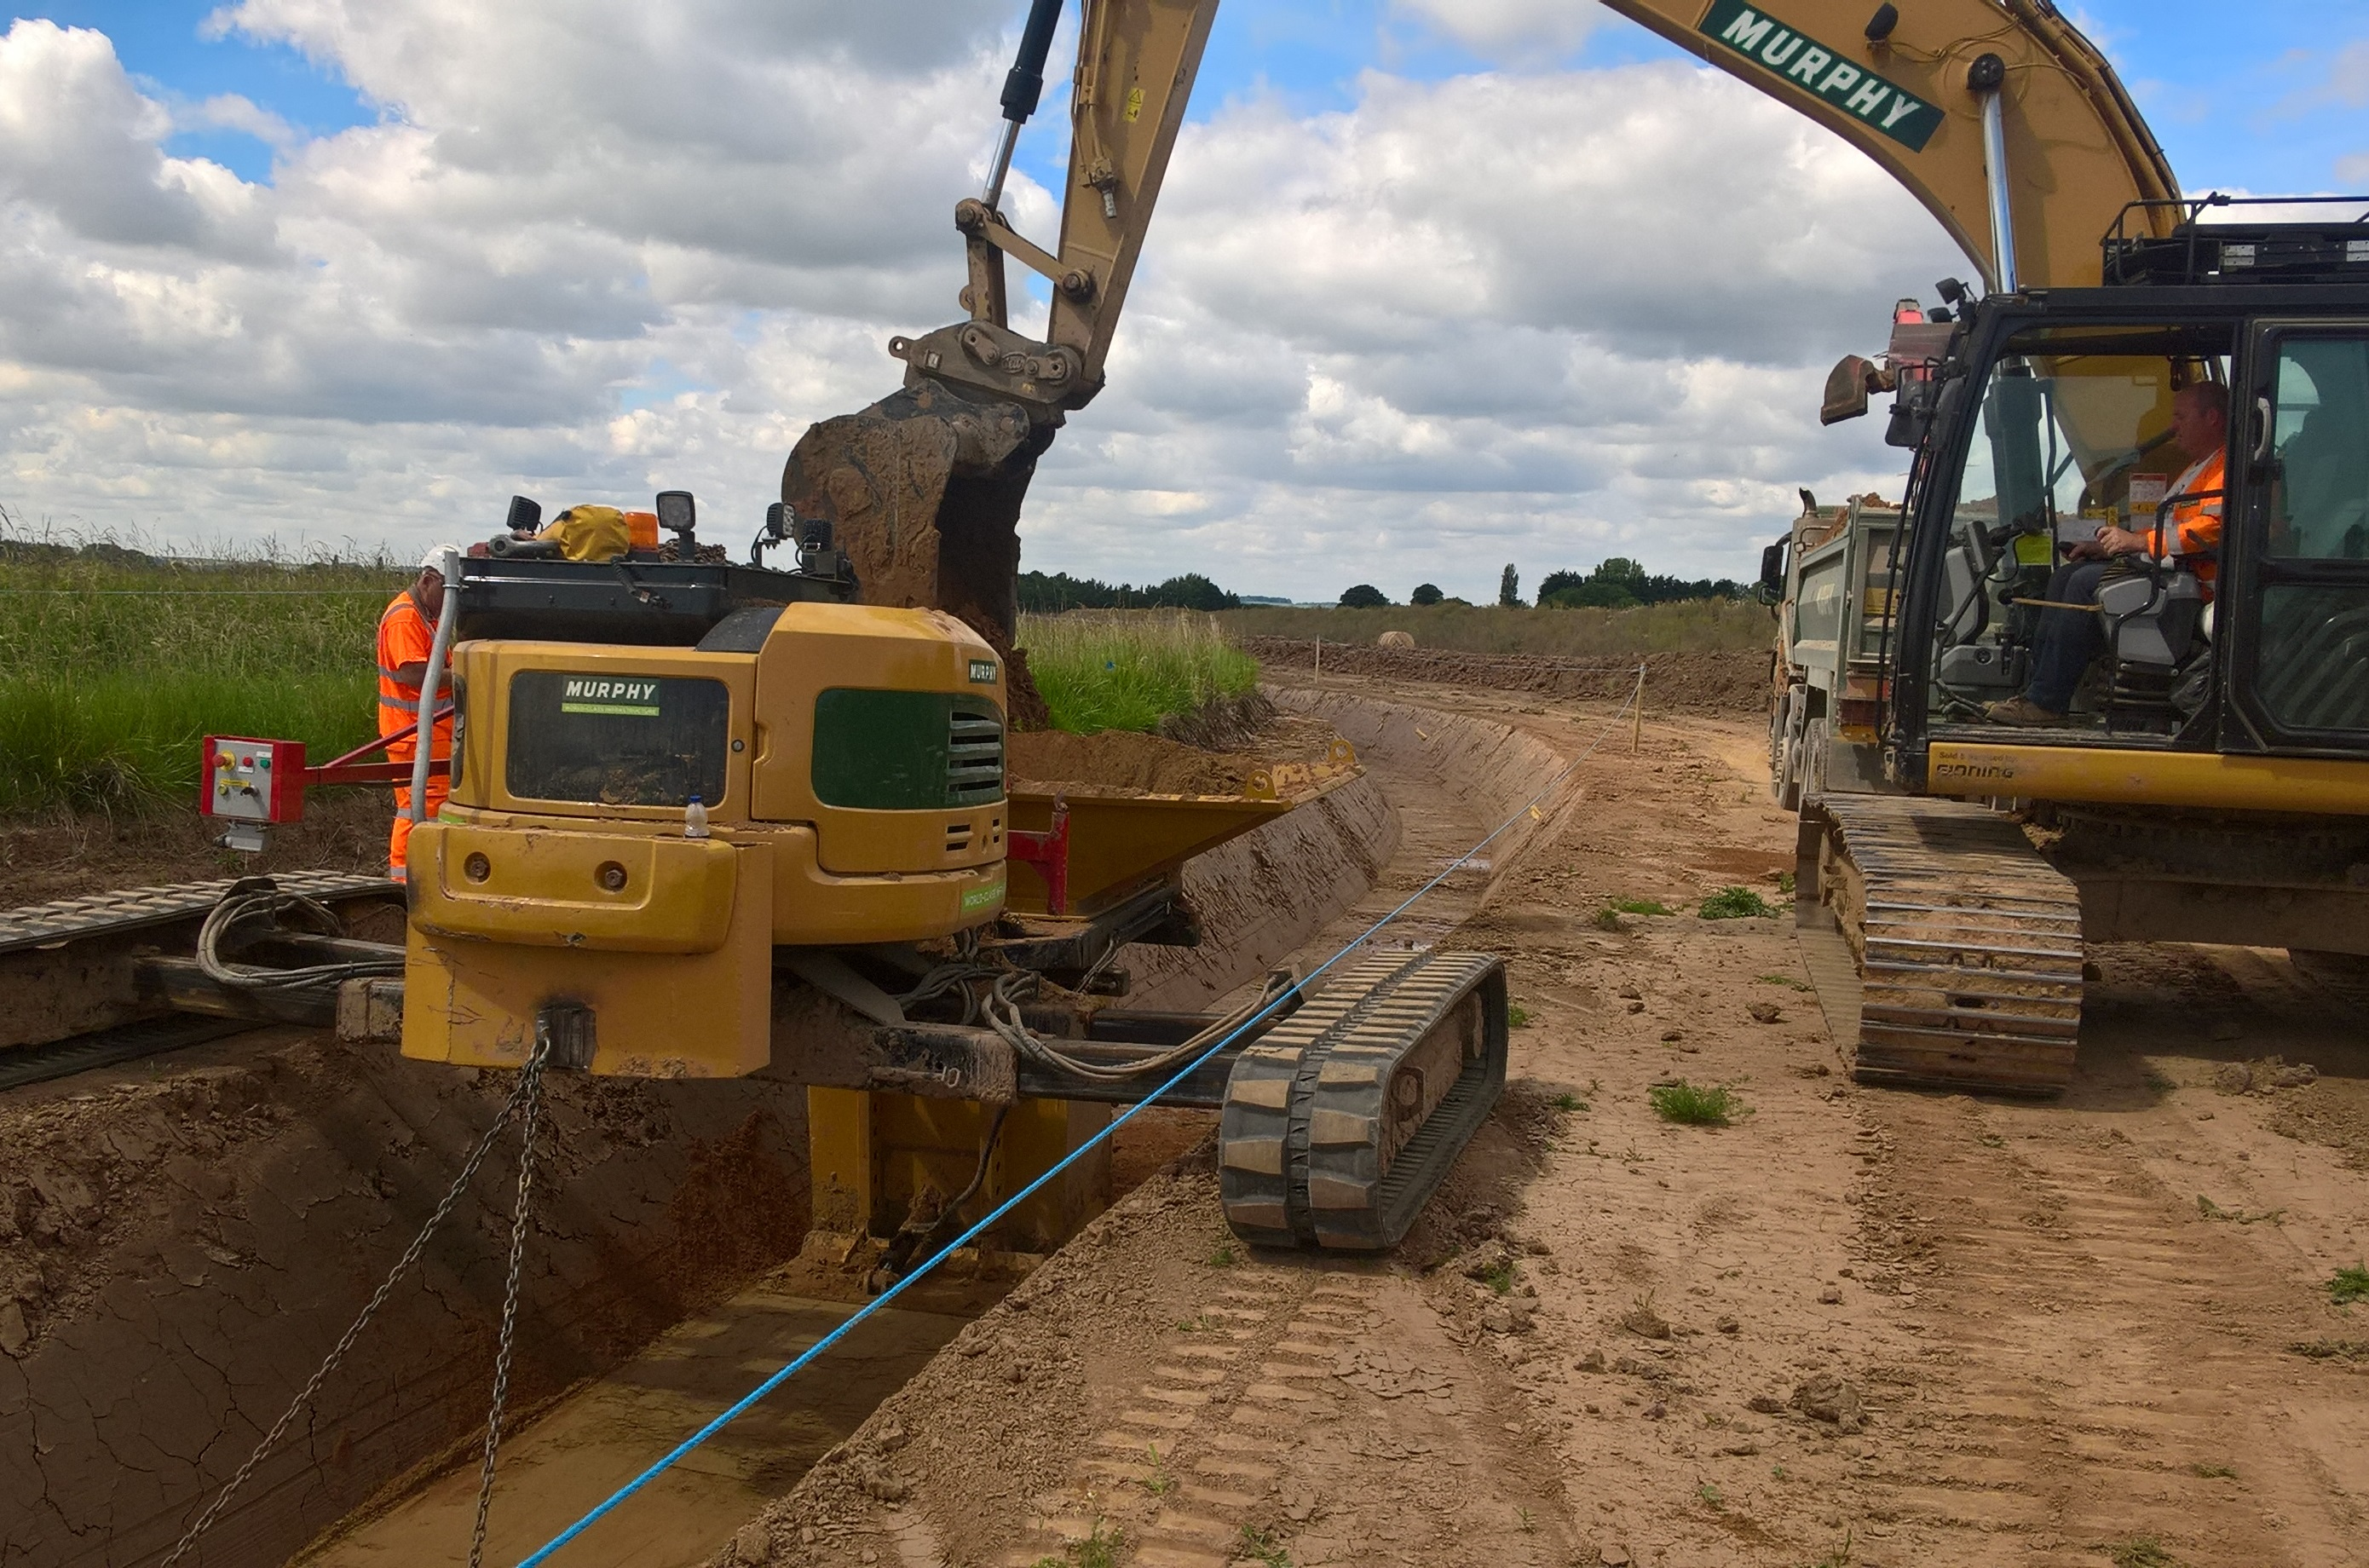 Triton Knoll appoints UK firm J Murphy & Sons Limited to deliver 'unprecedented' cable installation